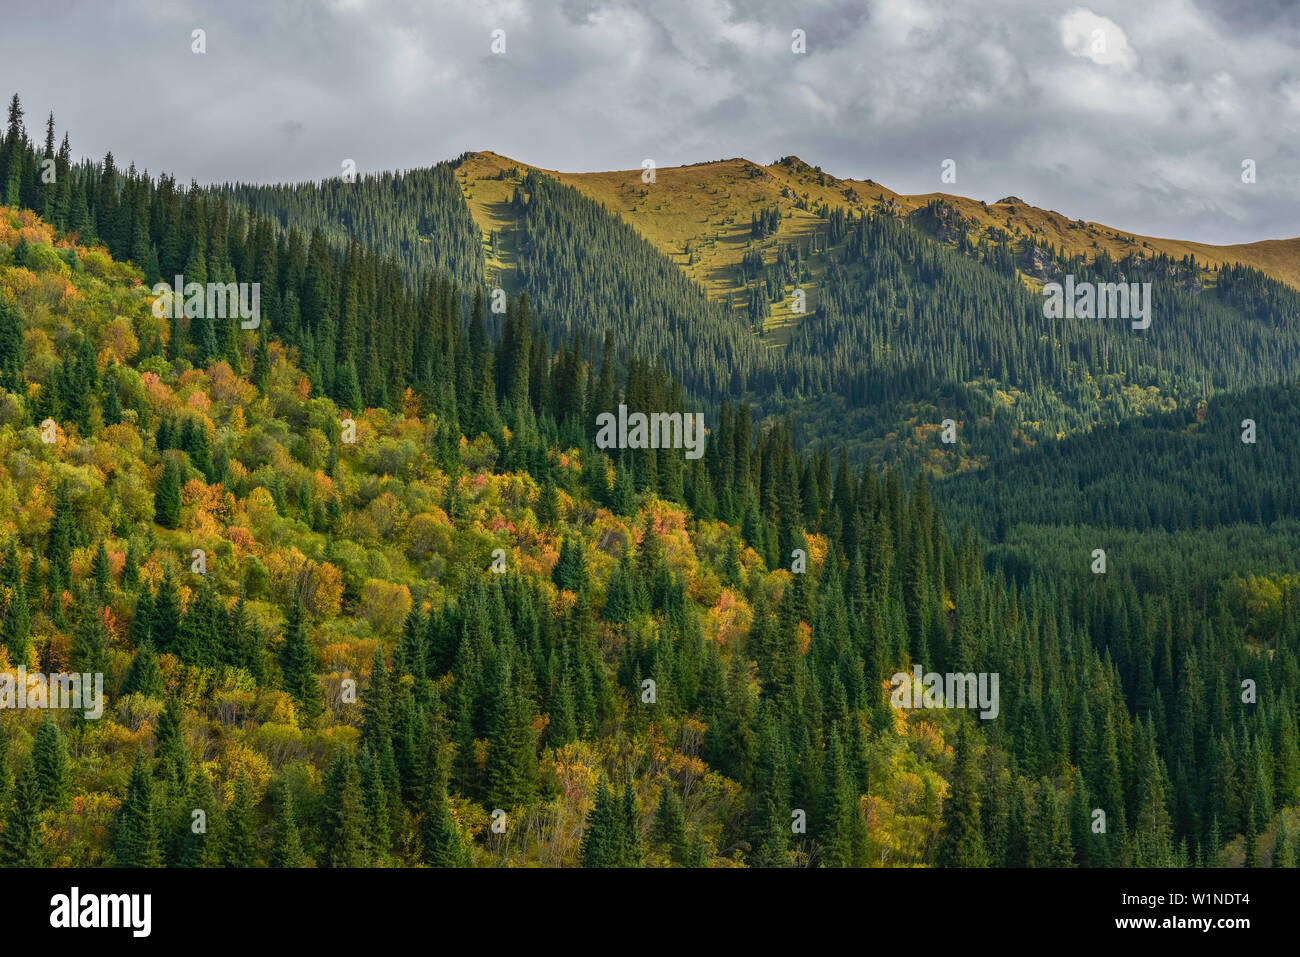 Mountain landscape with autumn colored trees and Tien Shan spruces, Kolsay Lakes National Park, Tien Shan Mountains, Tian Shan, Almaty region, Kazakhs Stock Photo